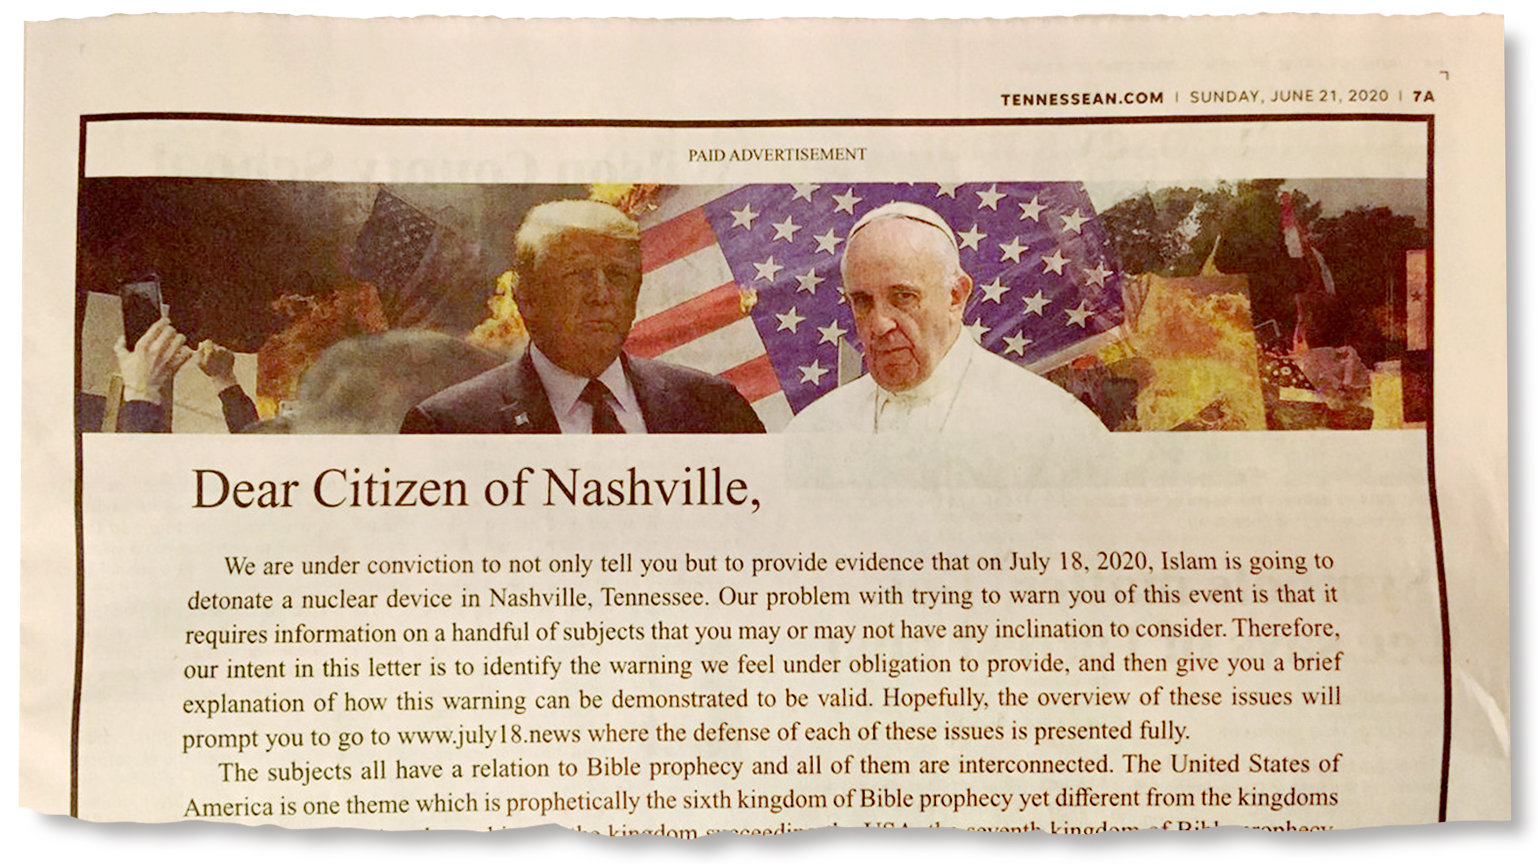 Newspaper Apologizes for 'Horrific' Ad that Claims 'Islam' was Going to Bomb Nashville